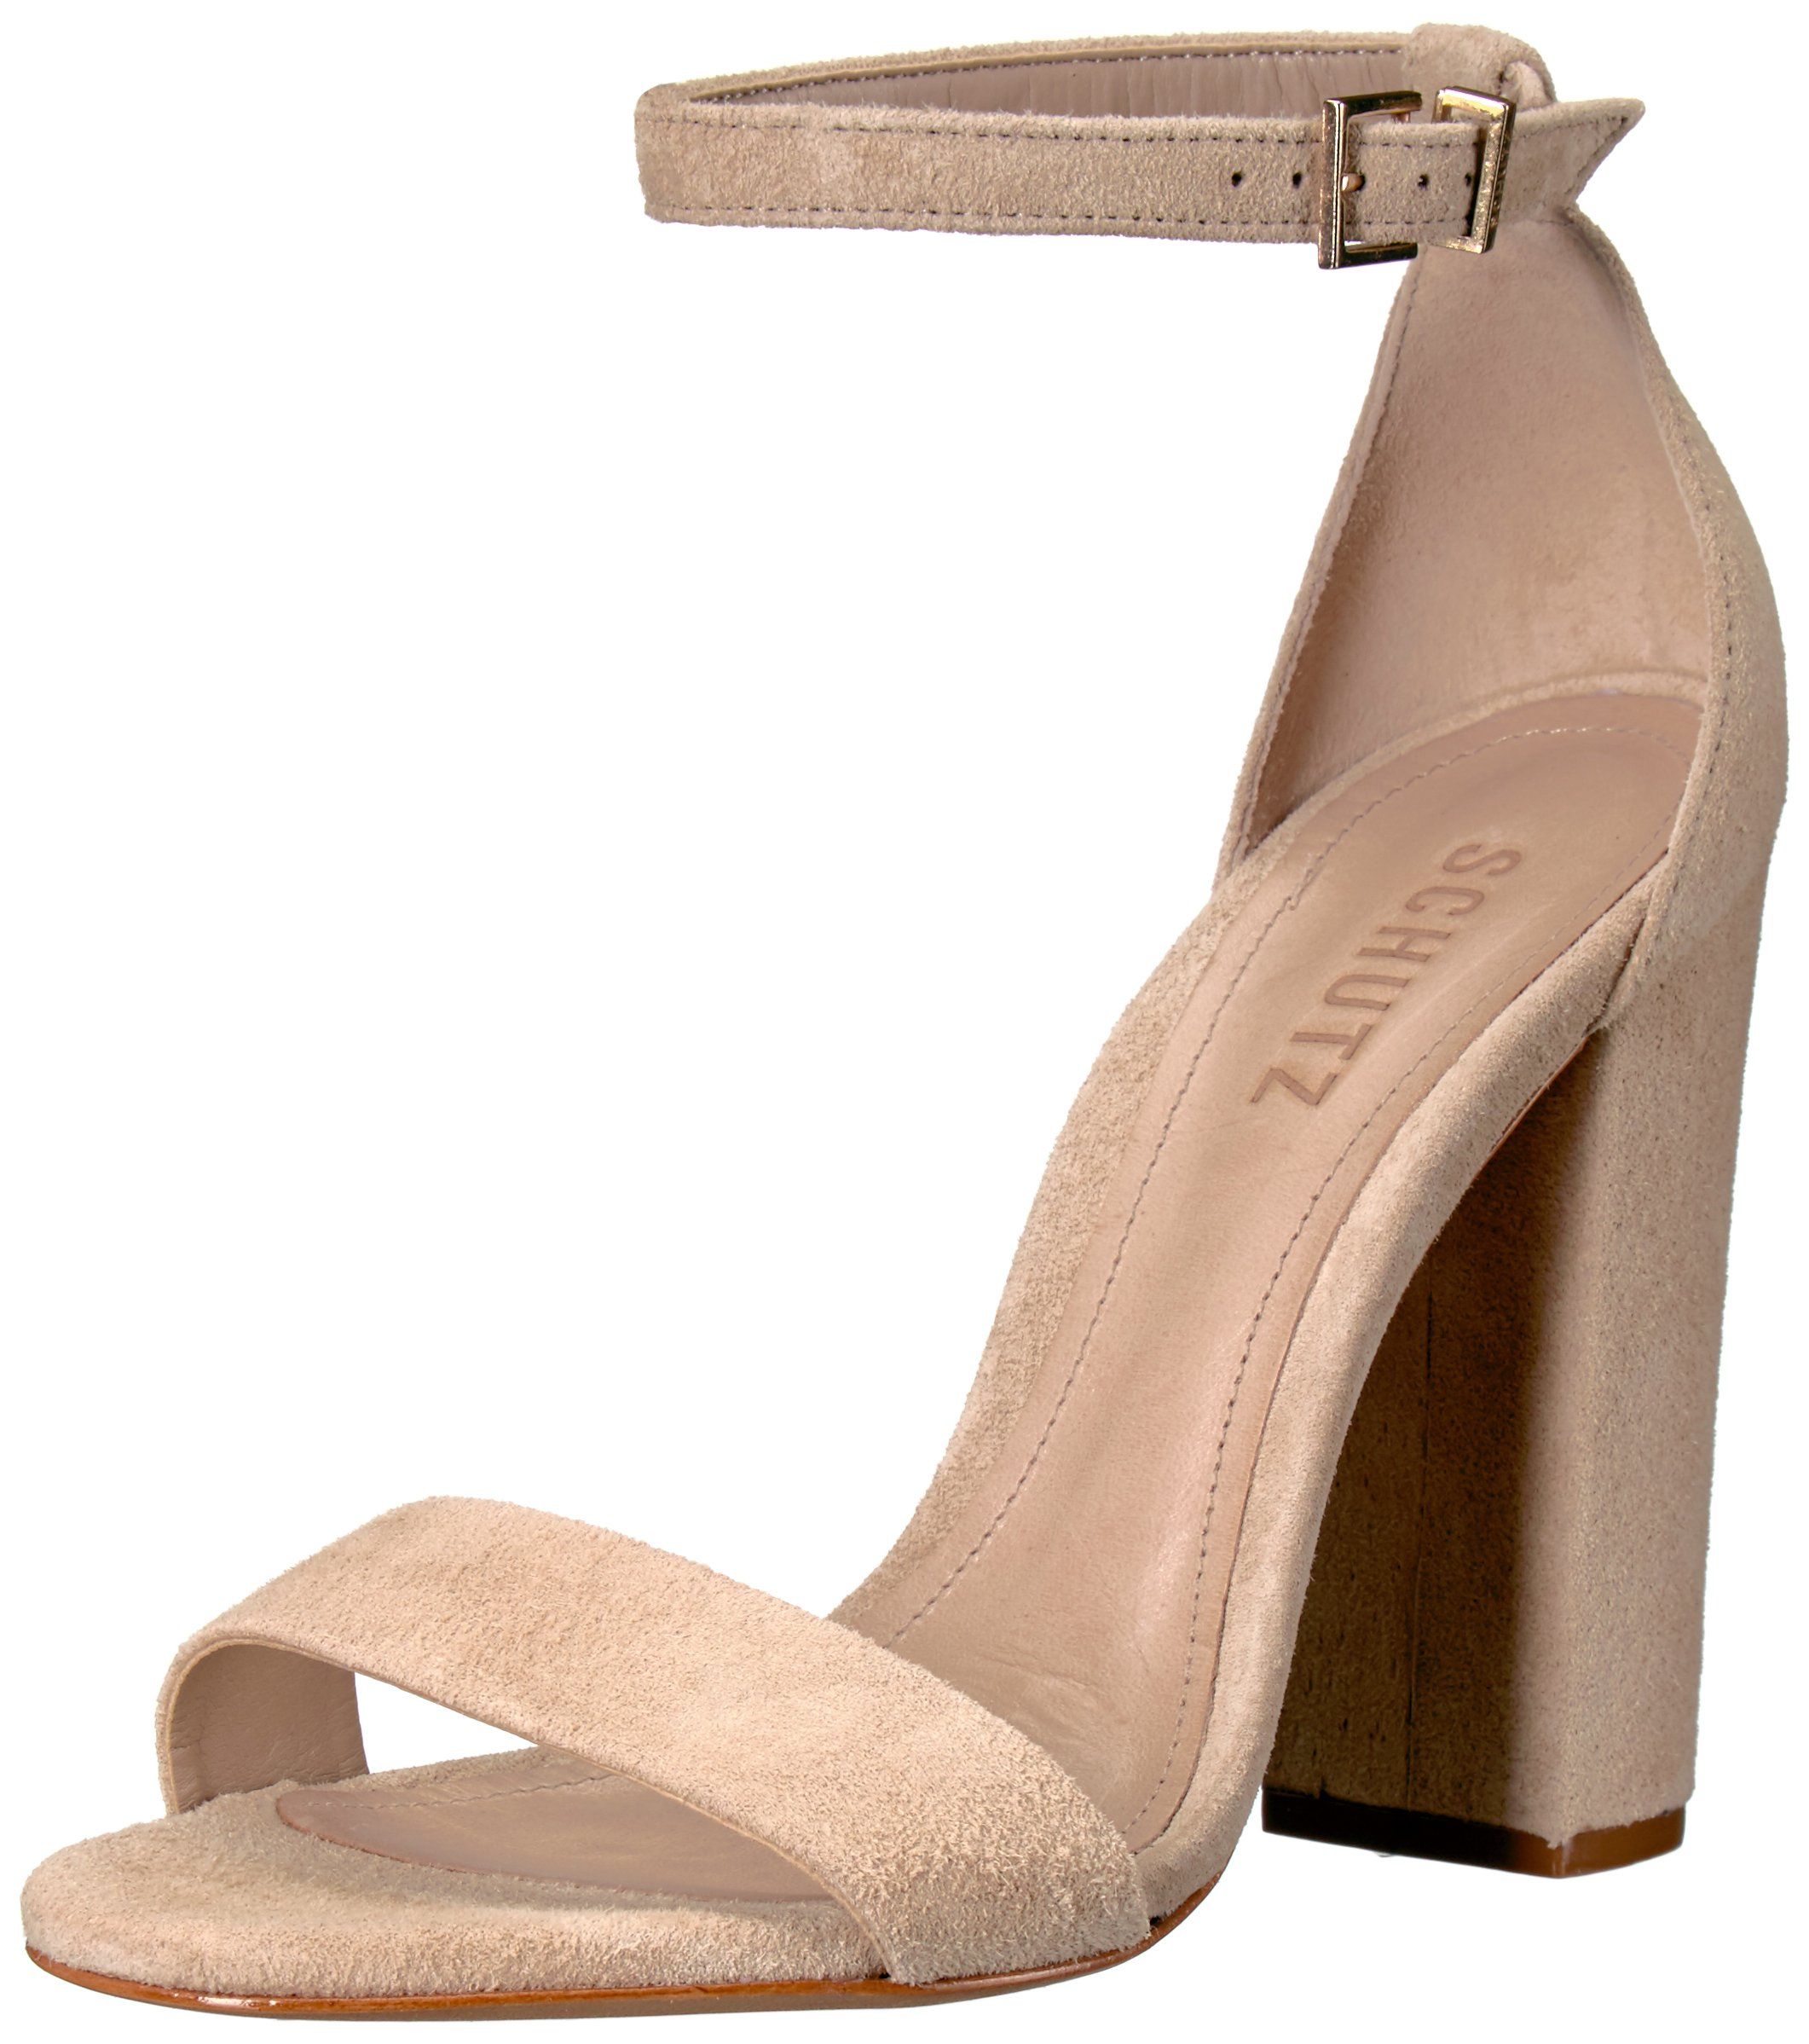 SCHUTZ Women's Enida Dress Sandal, Oyster, 7.5 M US